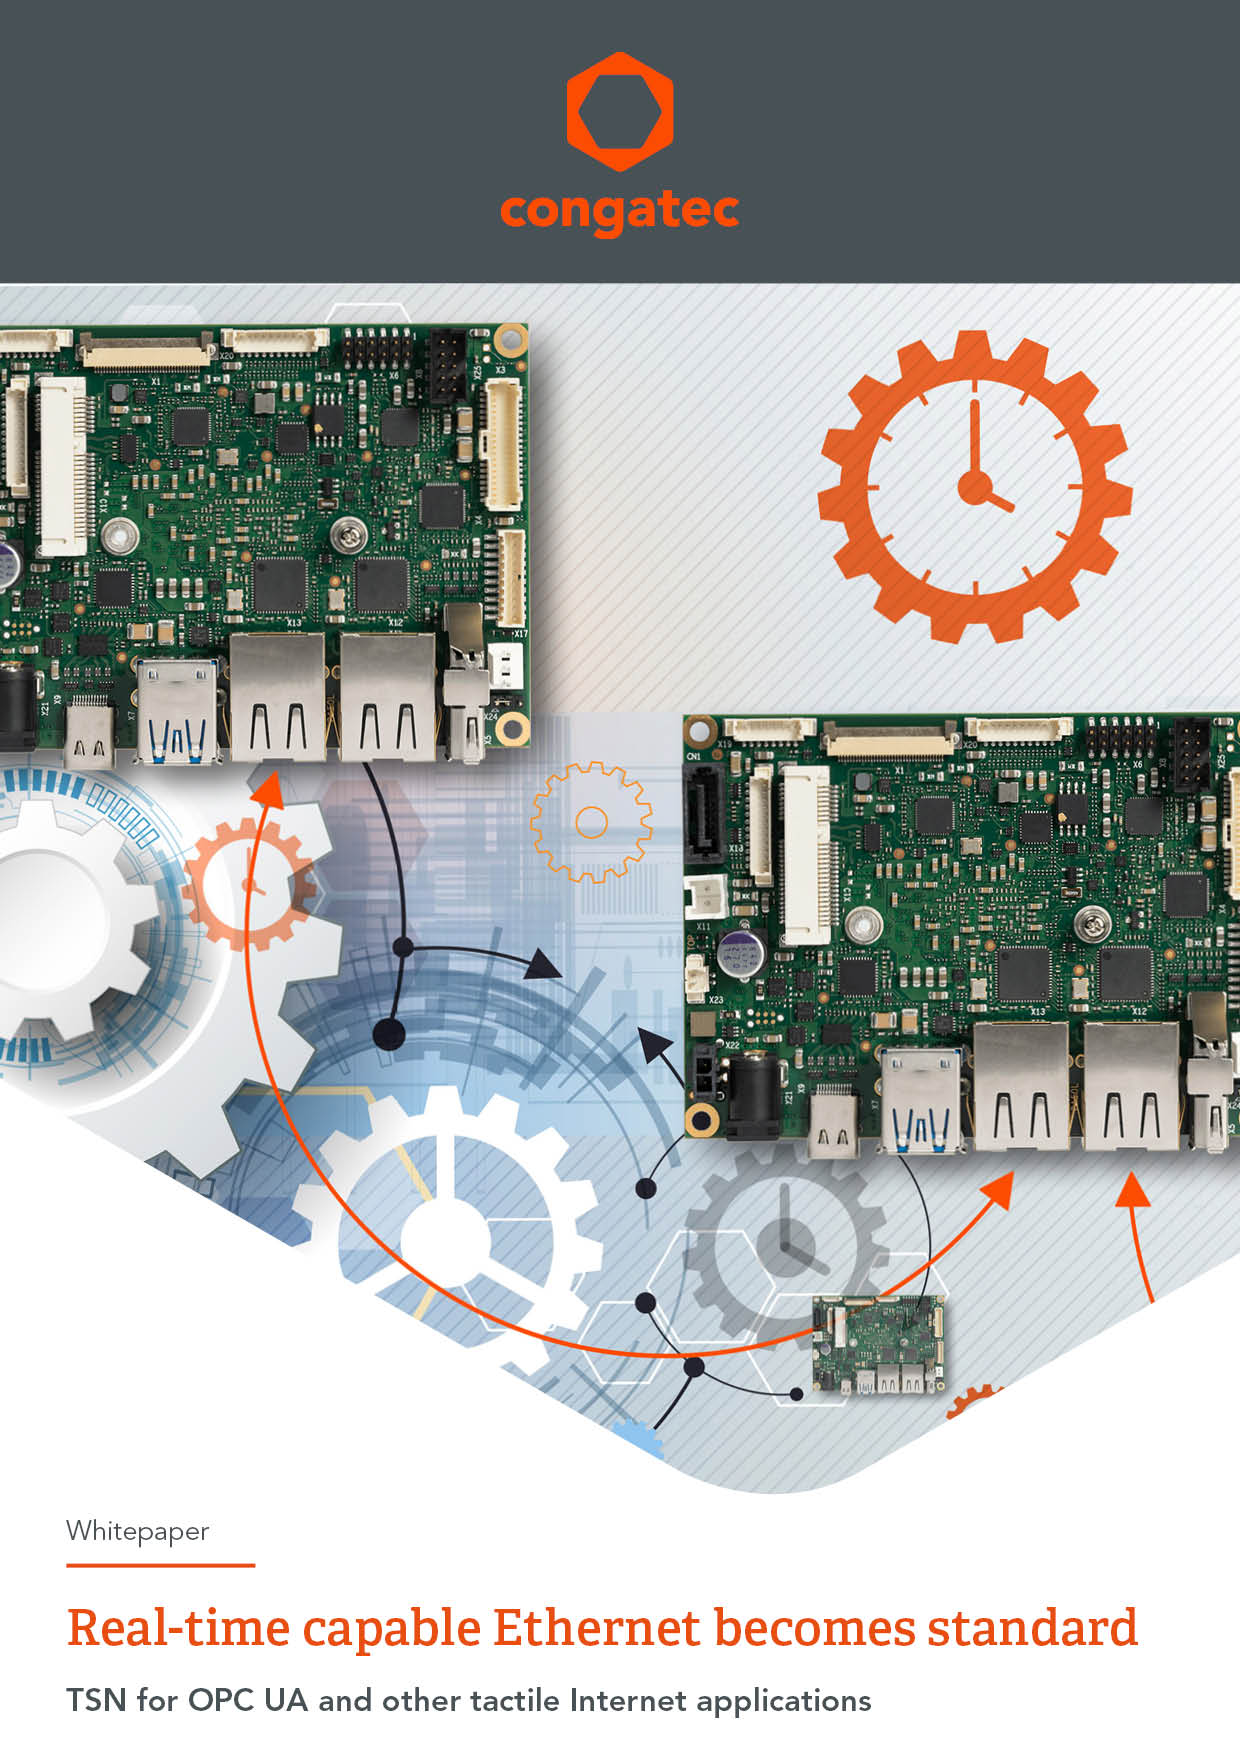 Real-time capable Ethernet becomes standard